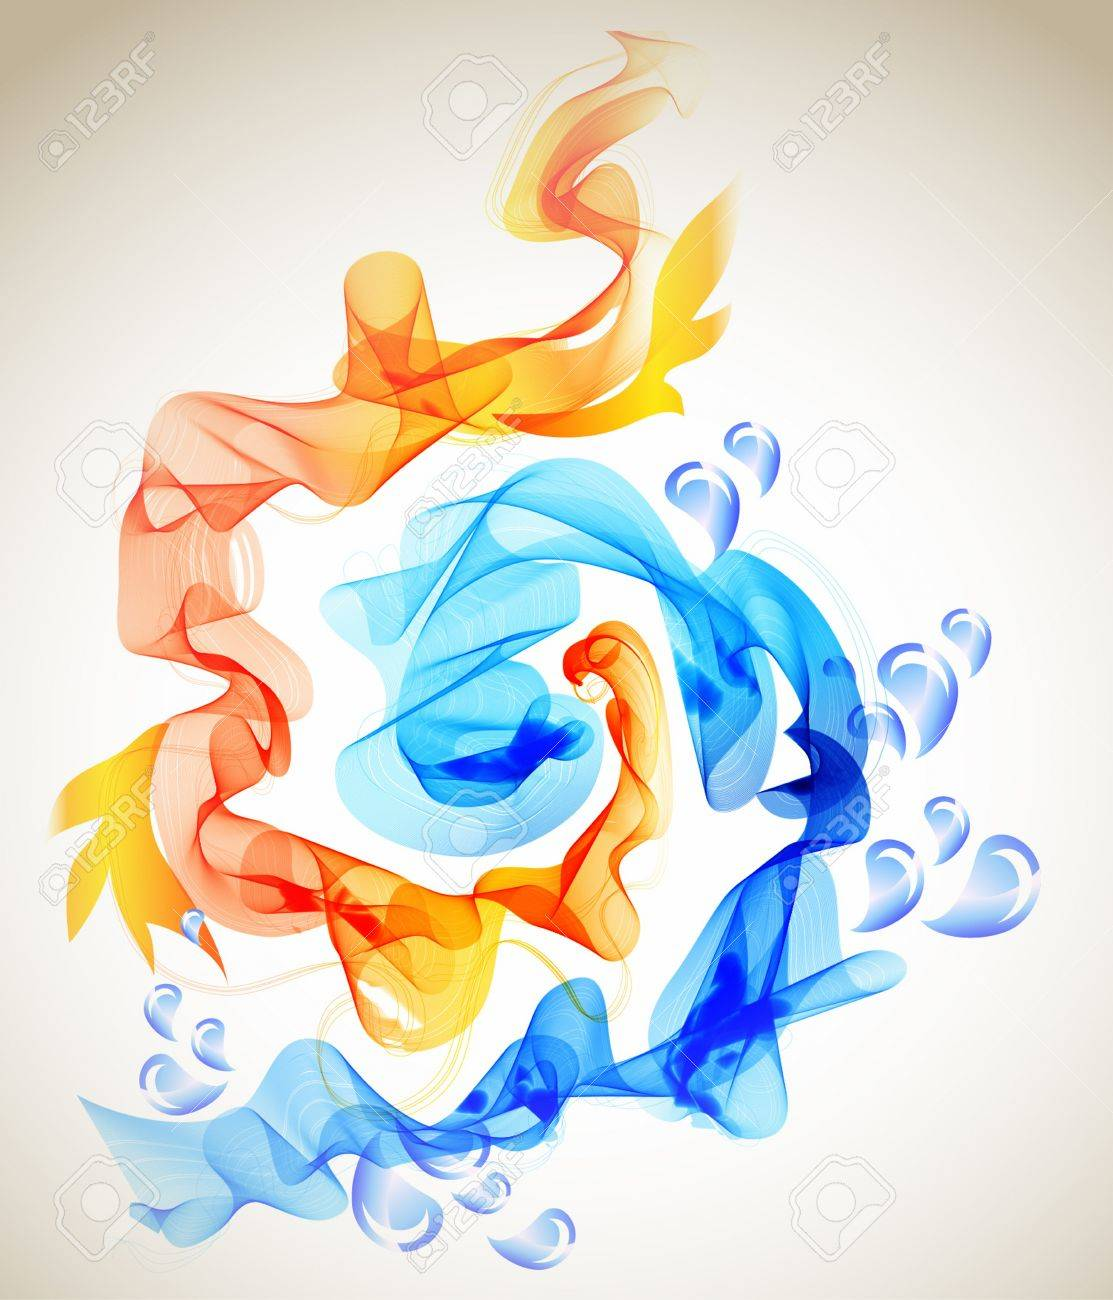 Abstract Background Blue And Red Ice And Fire Illustration